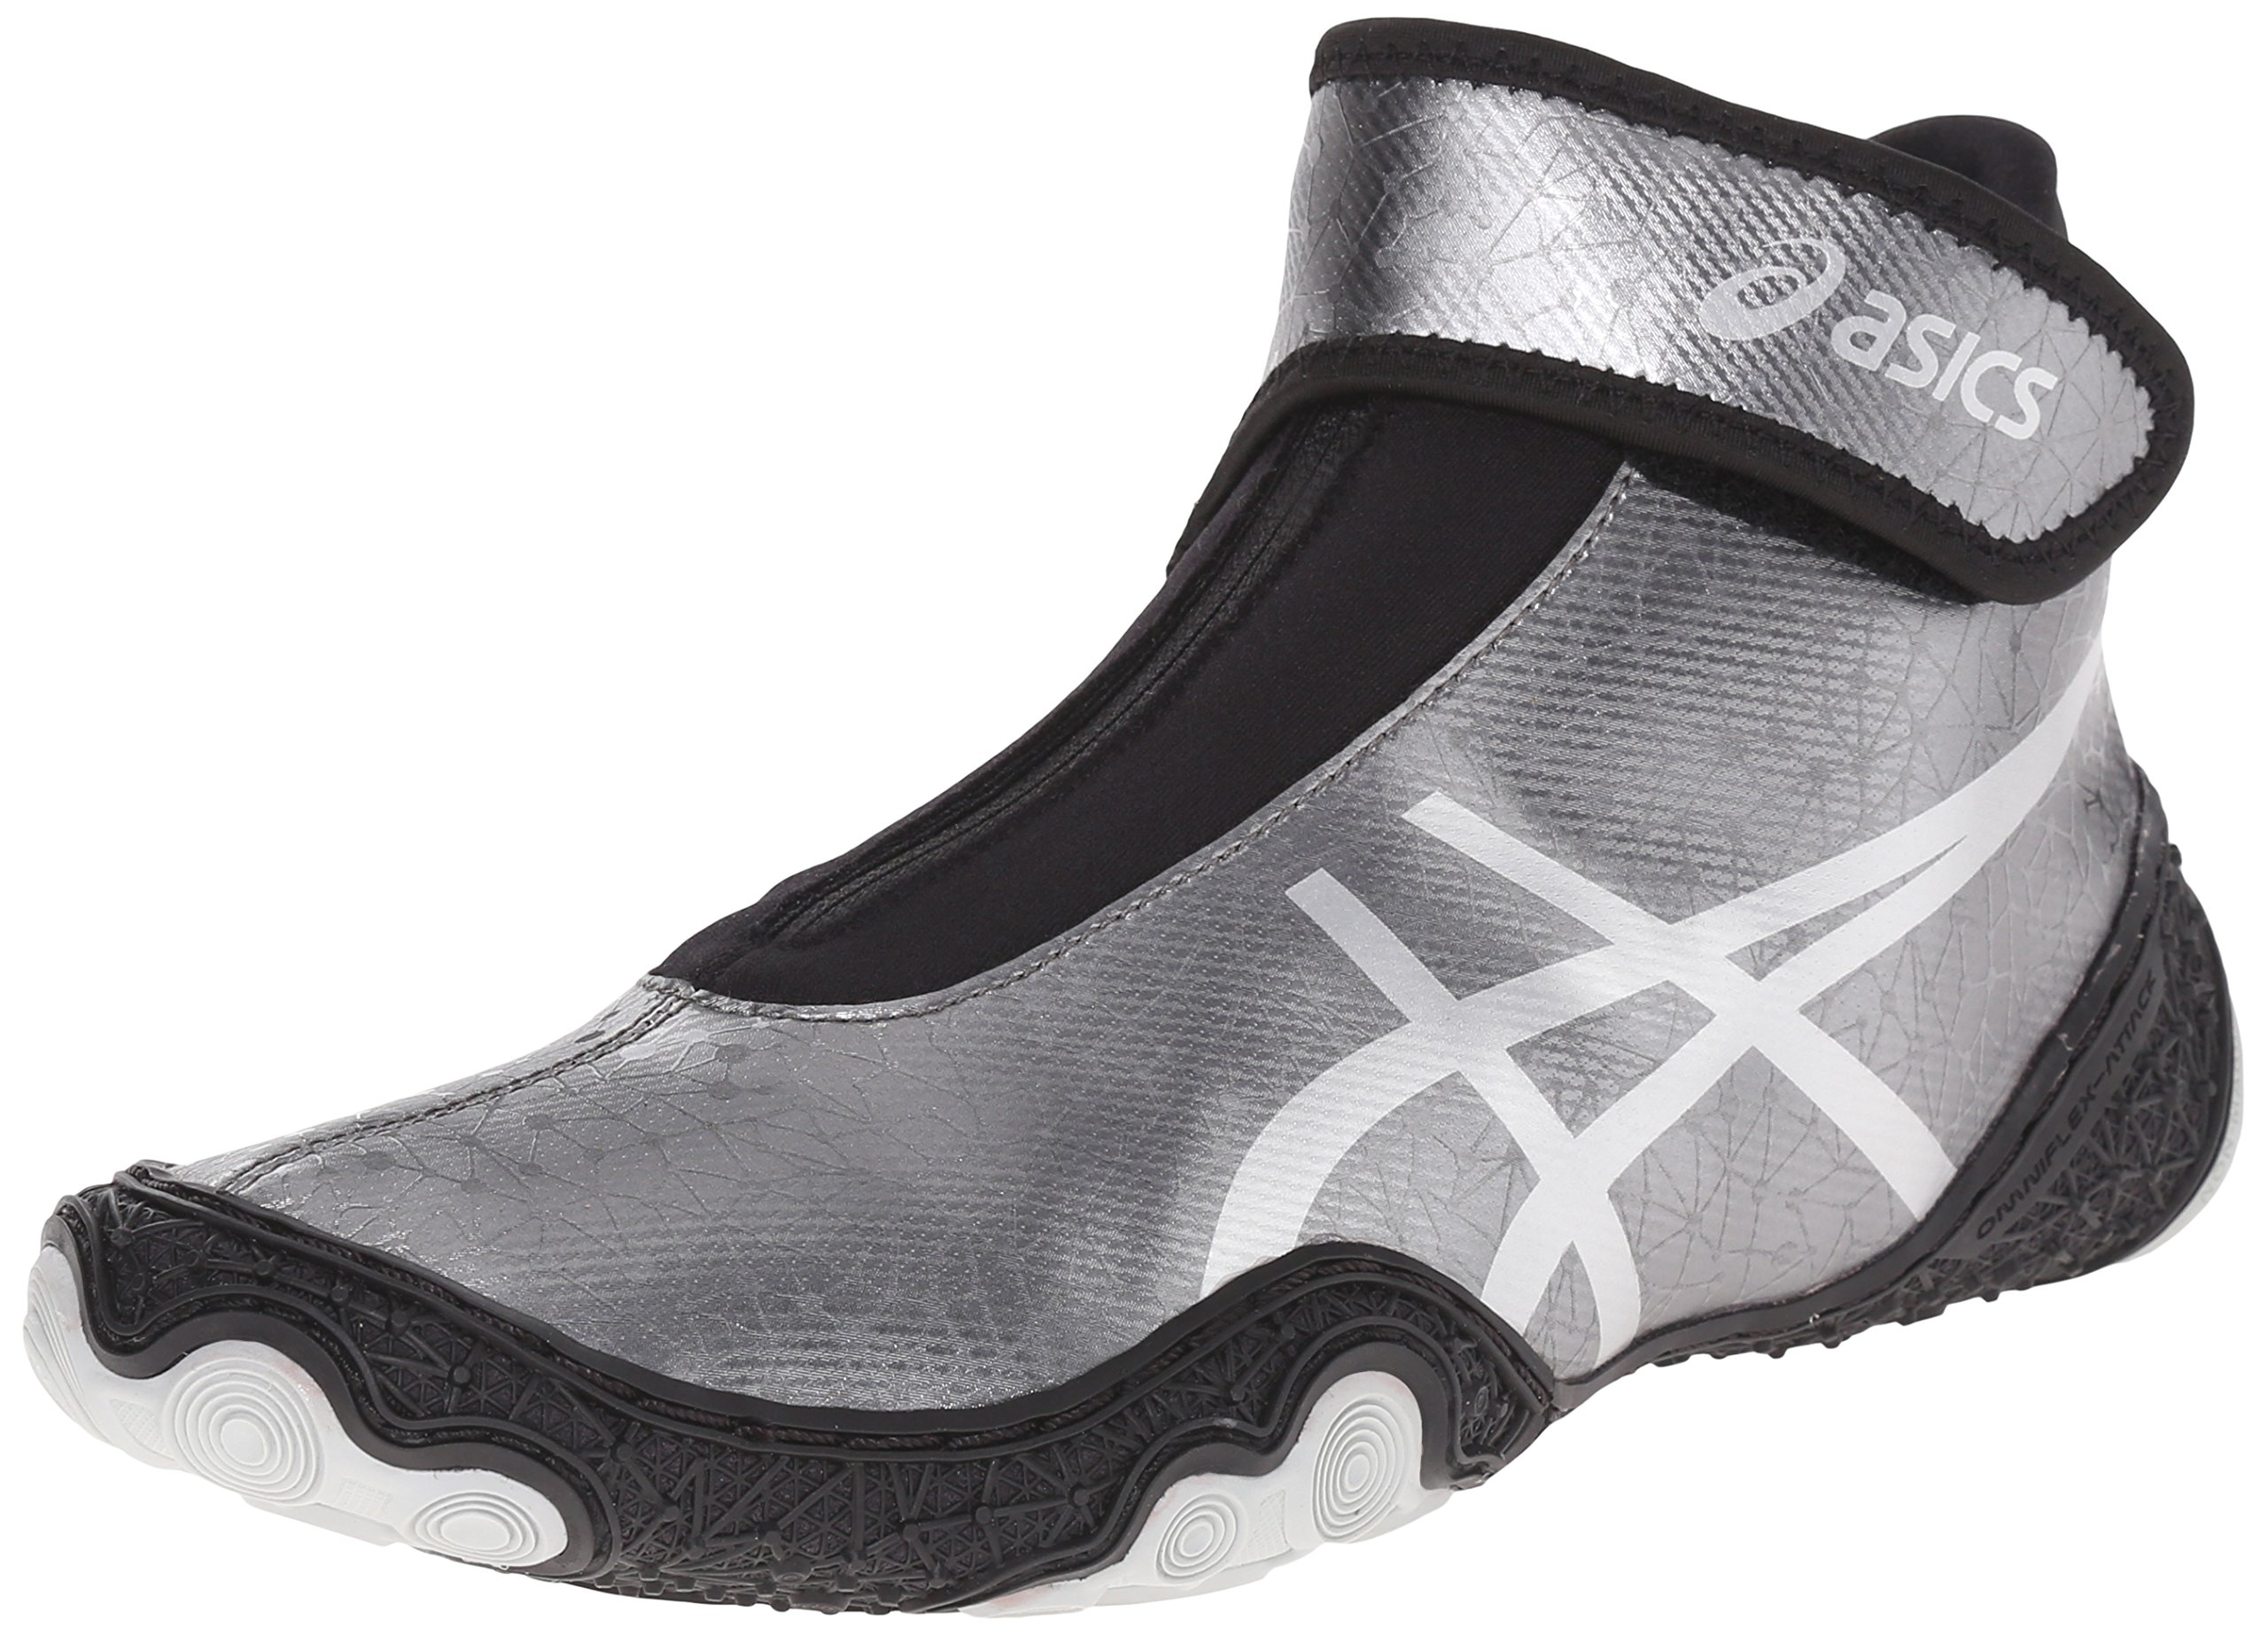 ASICS Men's Omniflex Attack V2.0 Wrestling Shoe, Gunmetal/Silver/Black, 10.5 M US by ASICS